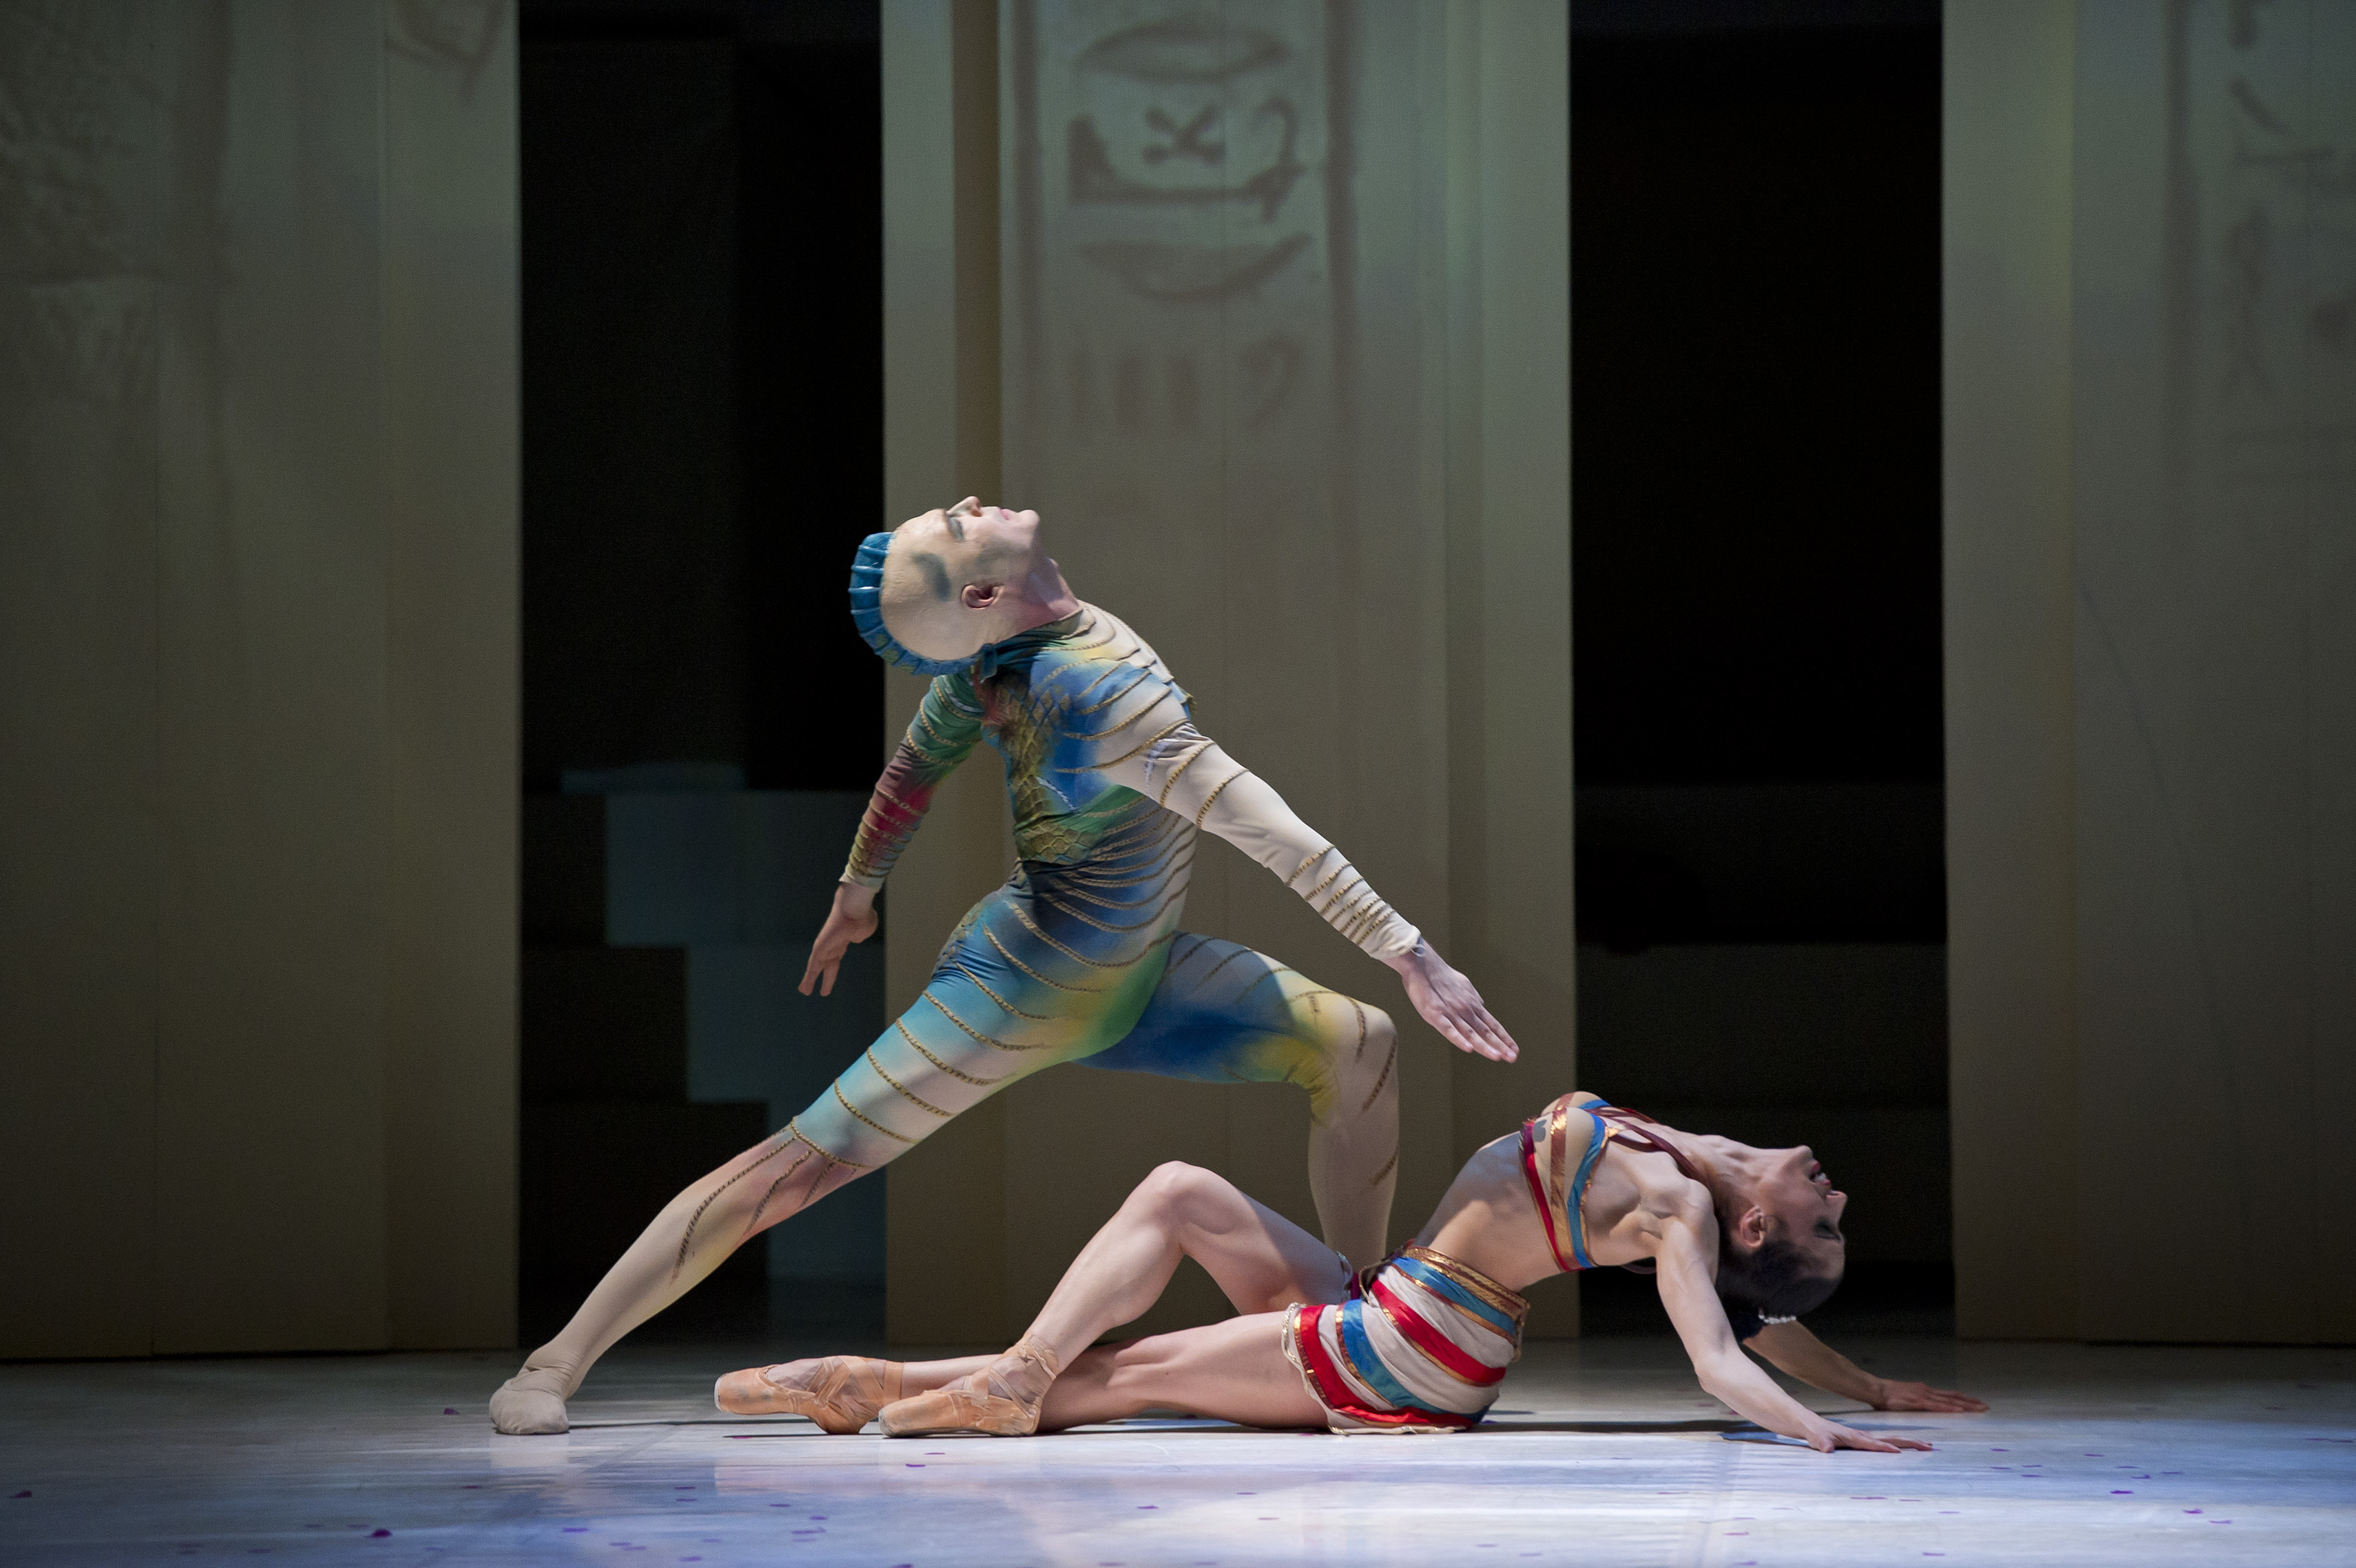 Northern Ballet dancers in Cleopatra, a ballet by David Nixon. Kenneth Tindall as Wadjet and Martha Leebolt as Cleopatra.